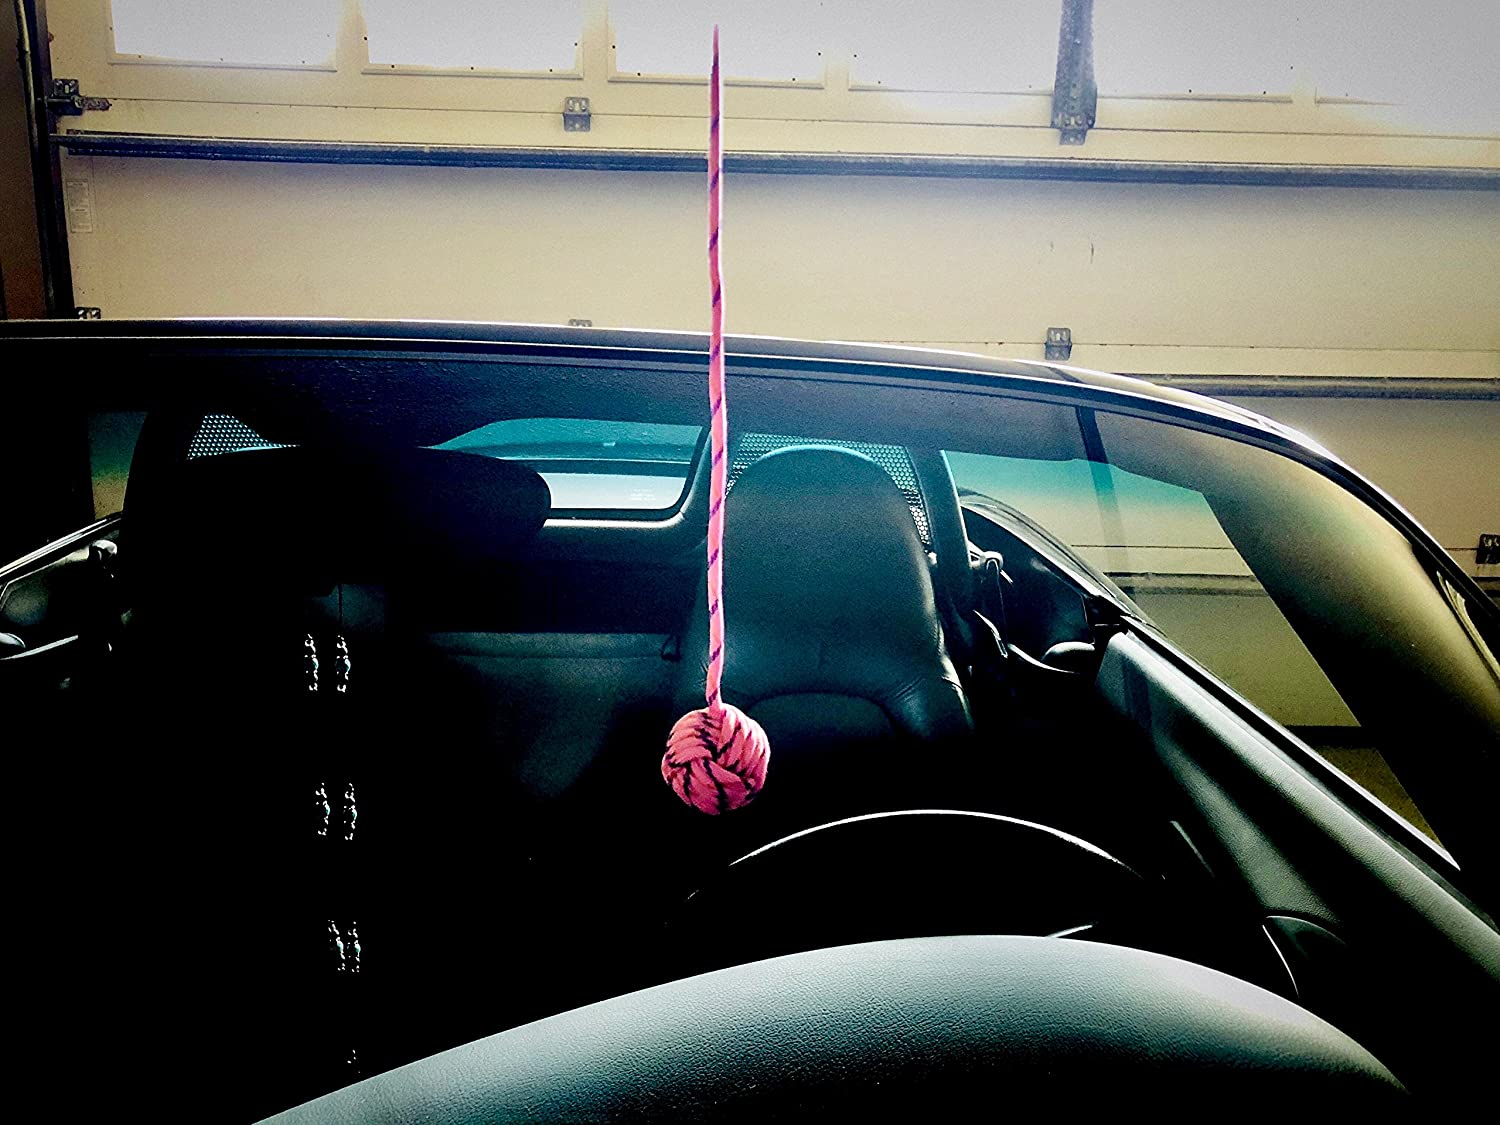 BallPahk Pink Adjustable Parking Aid Makes Parking in Your Garage Easy Quality Materials No Tools Installation Simple Fun Multi Color Design